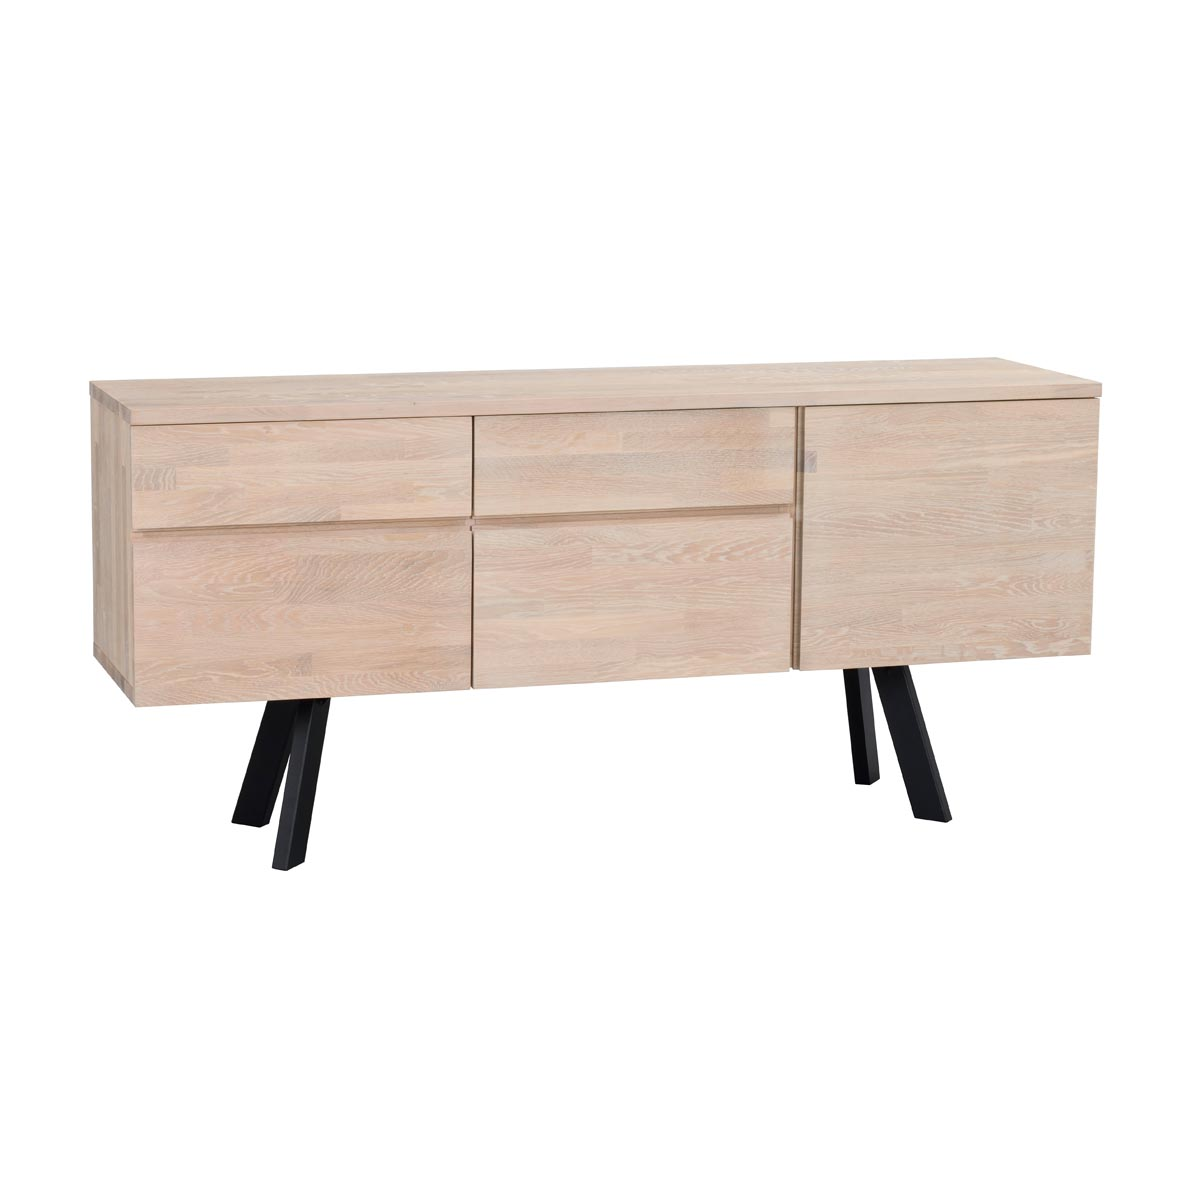 Fred sideboard ww R-117421_a